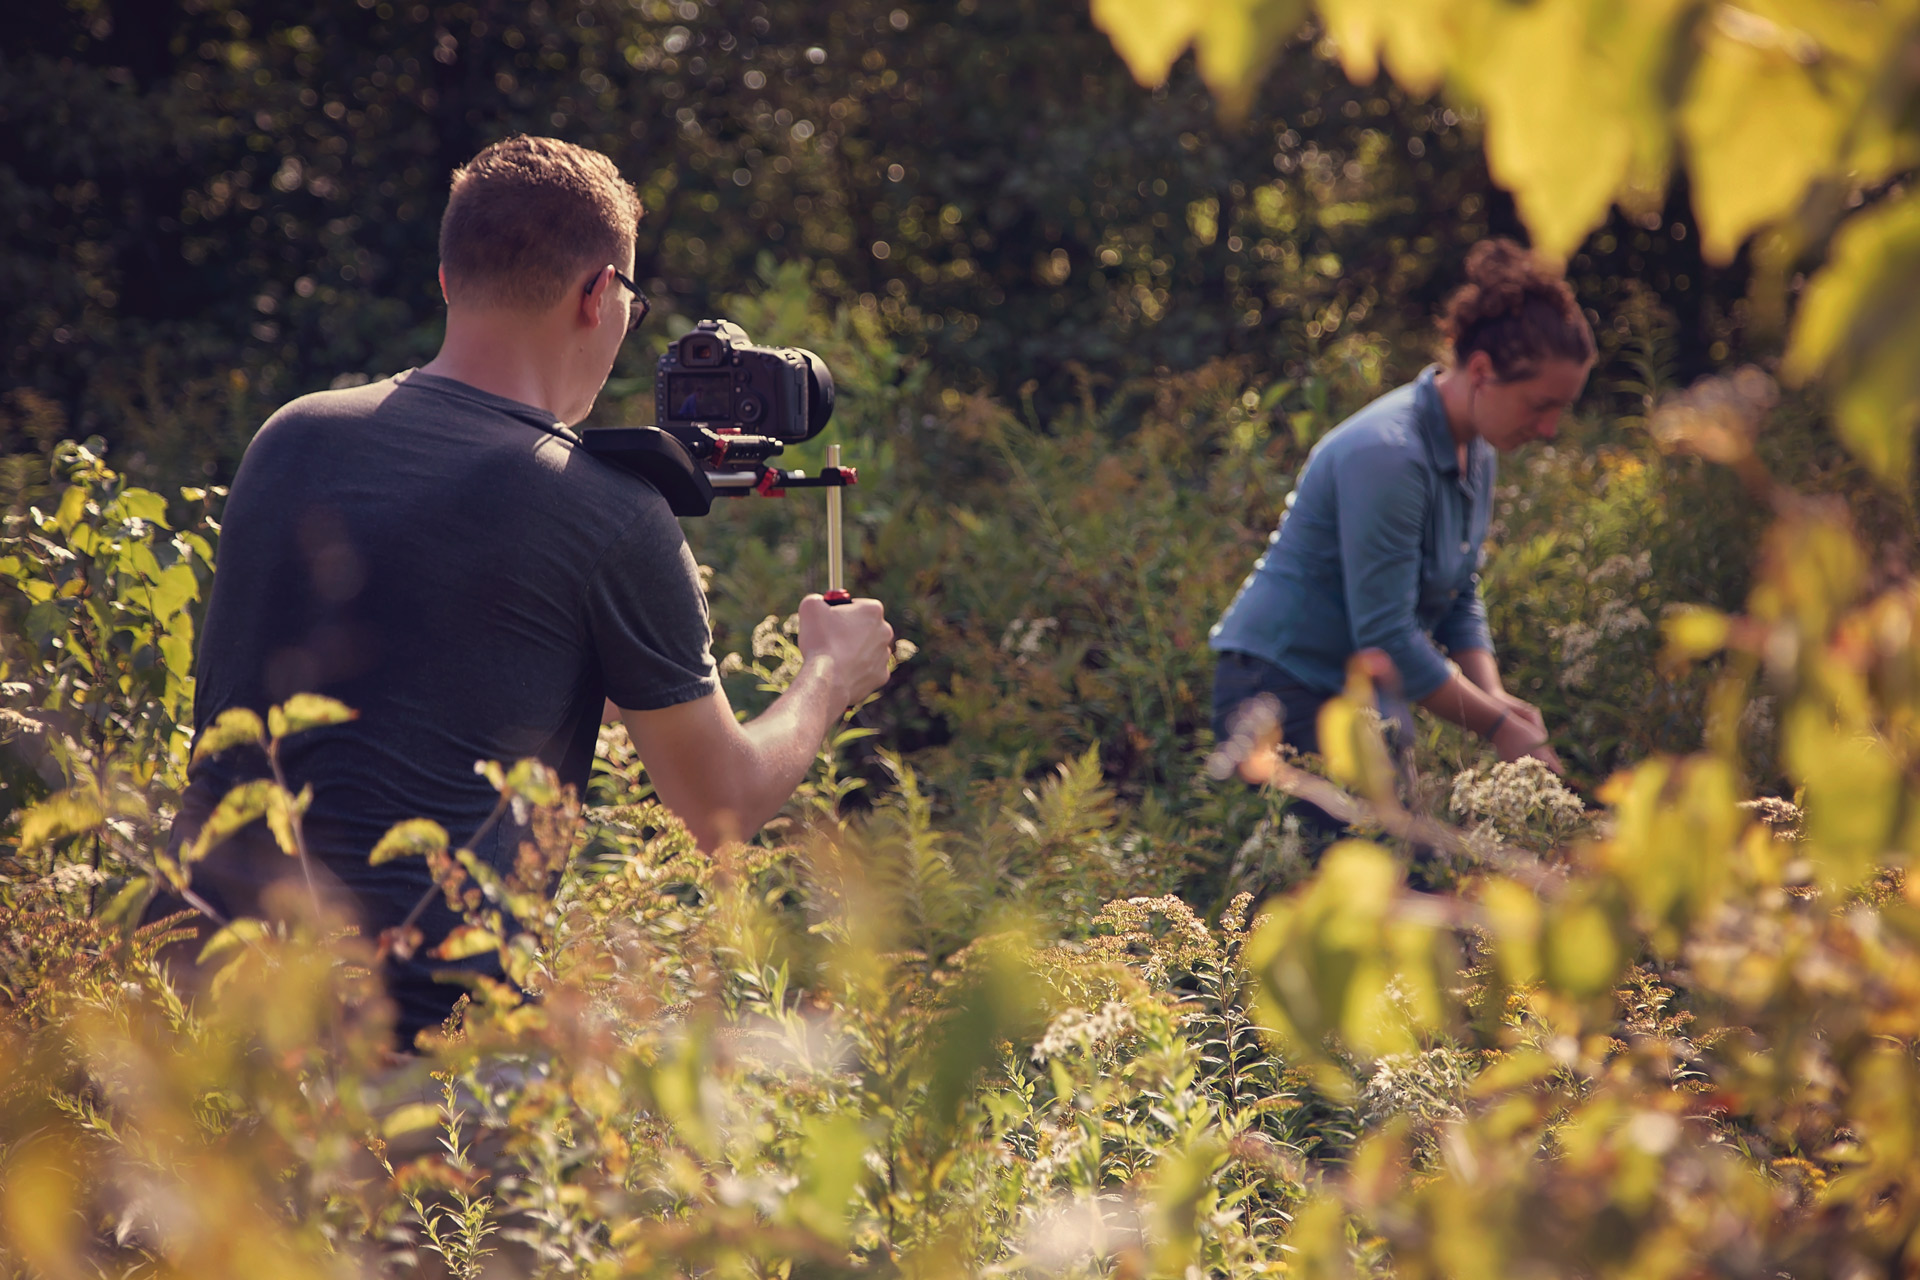 filming-a-woman-farming-in-maine-parisleaf.jpg